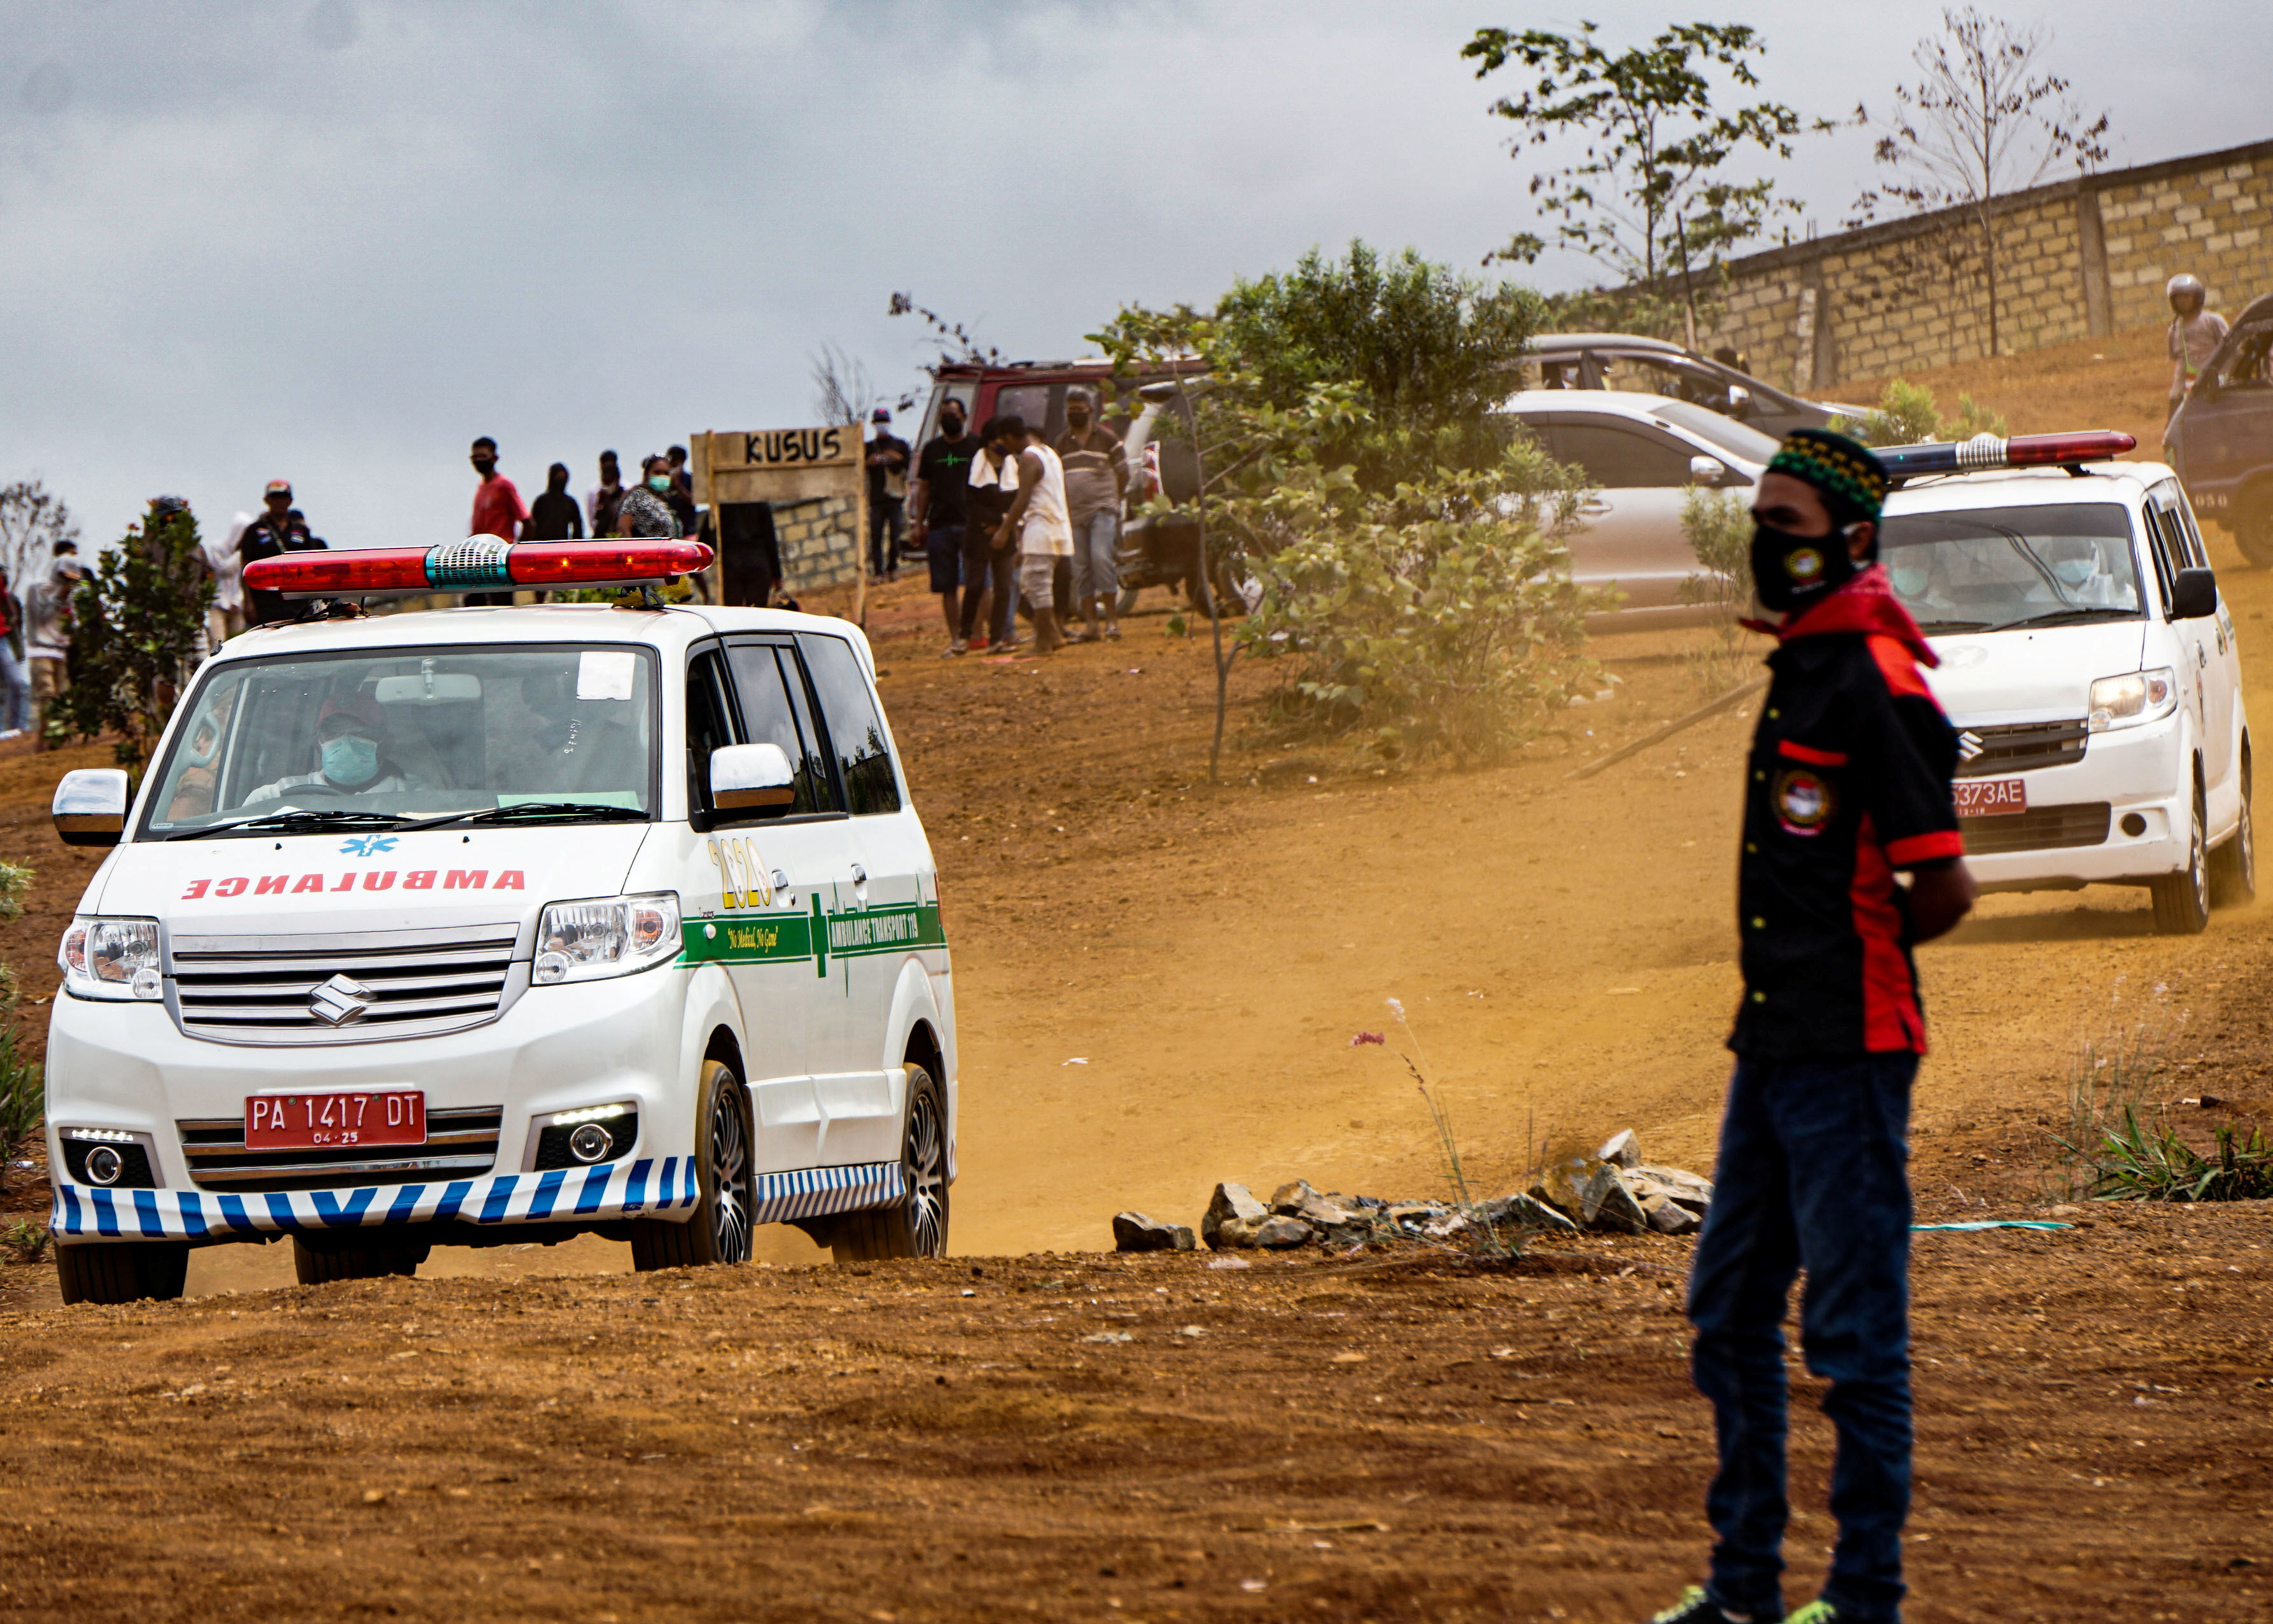 Ambulances are seen at a burial area provided by the government for coronavirus disease (COVID-19) victims, as cases surge in Jayapura, Papua, Indonesia July 20, 2021, in this photo taken by Antara Foto/Indrayadi TH/via REUTERS